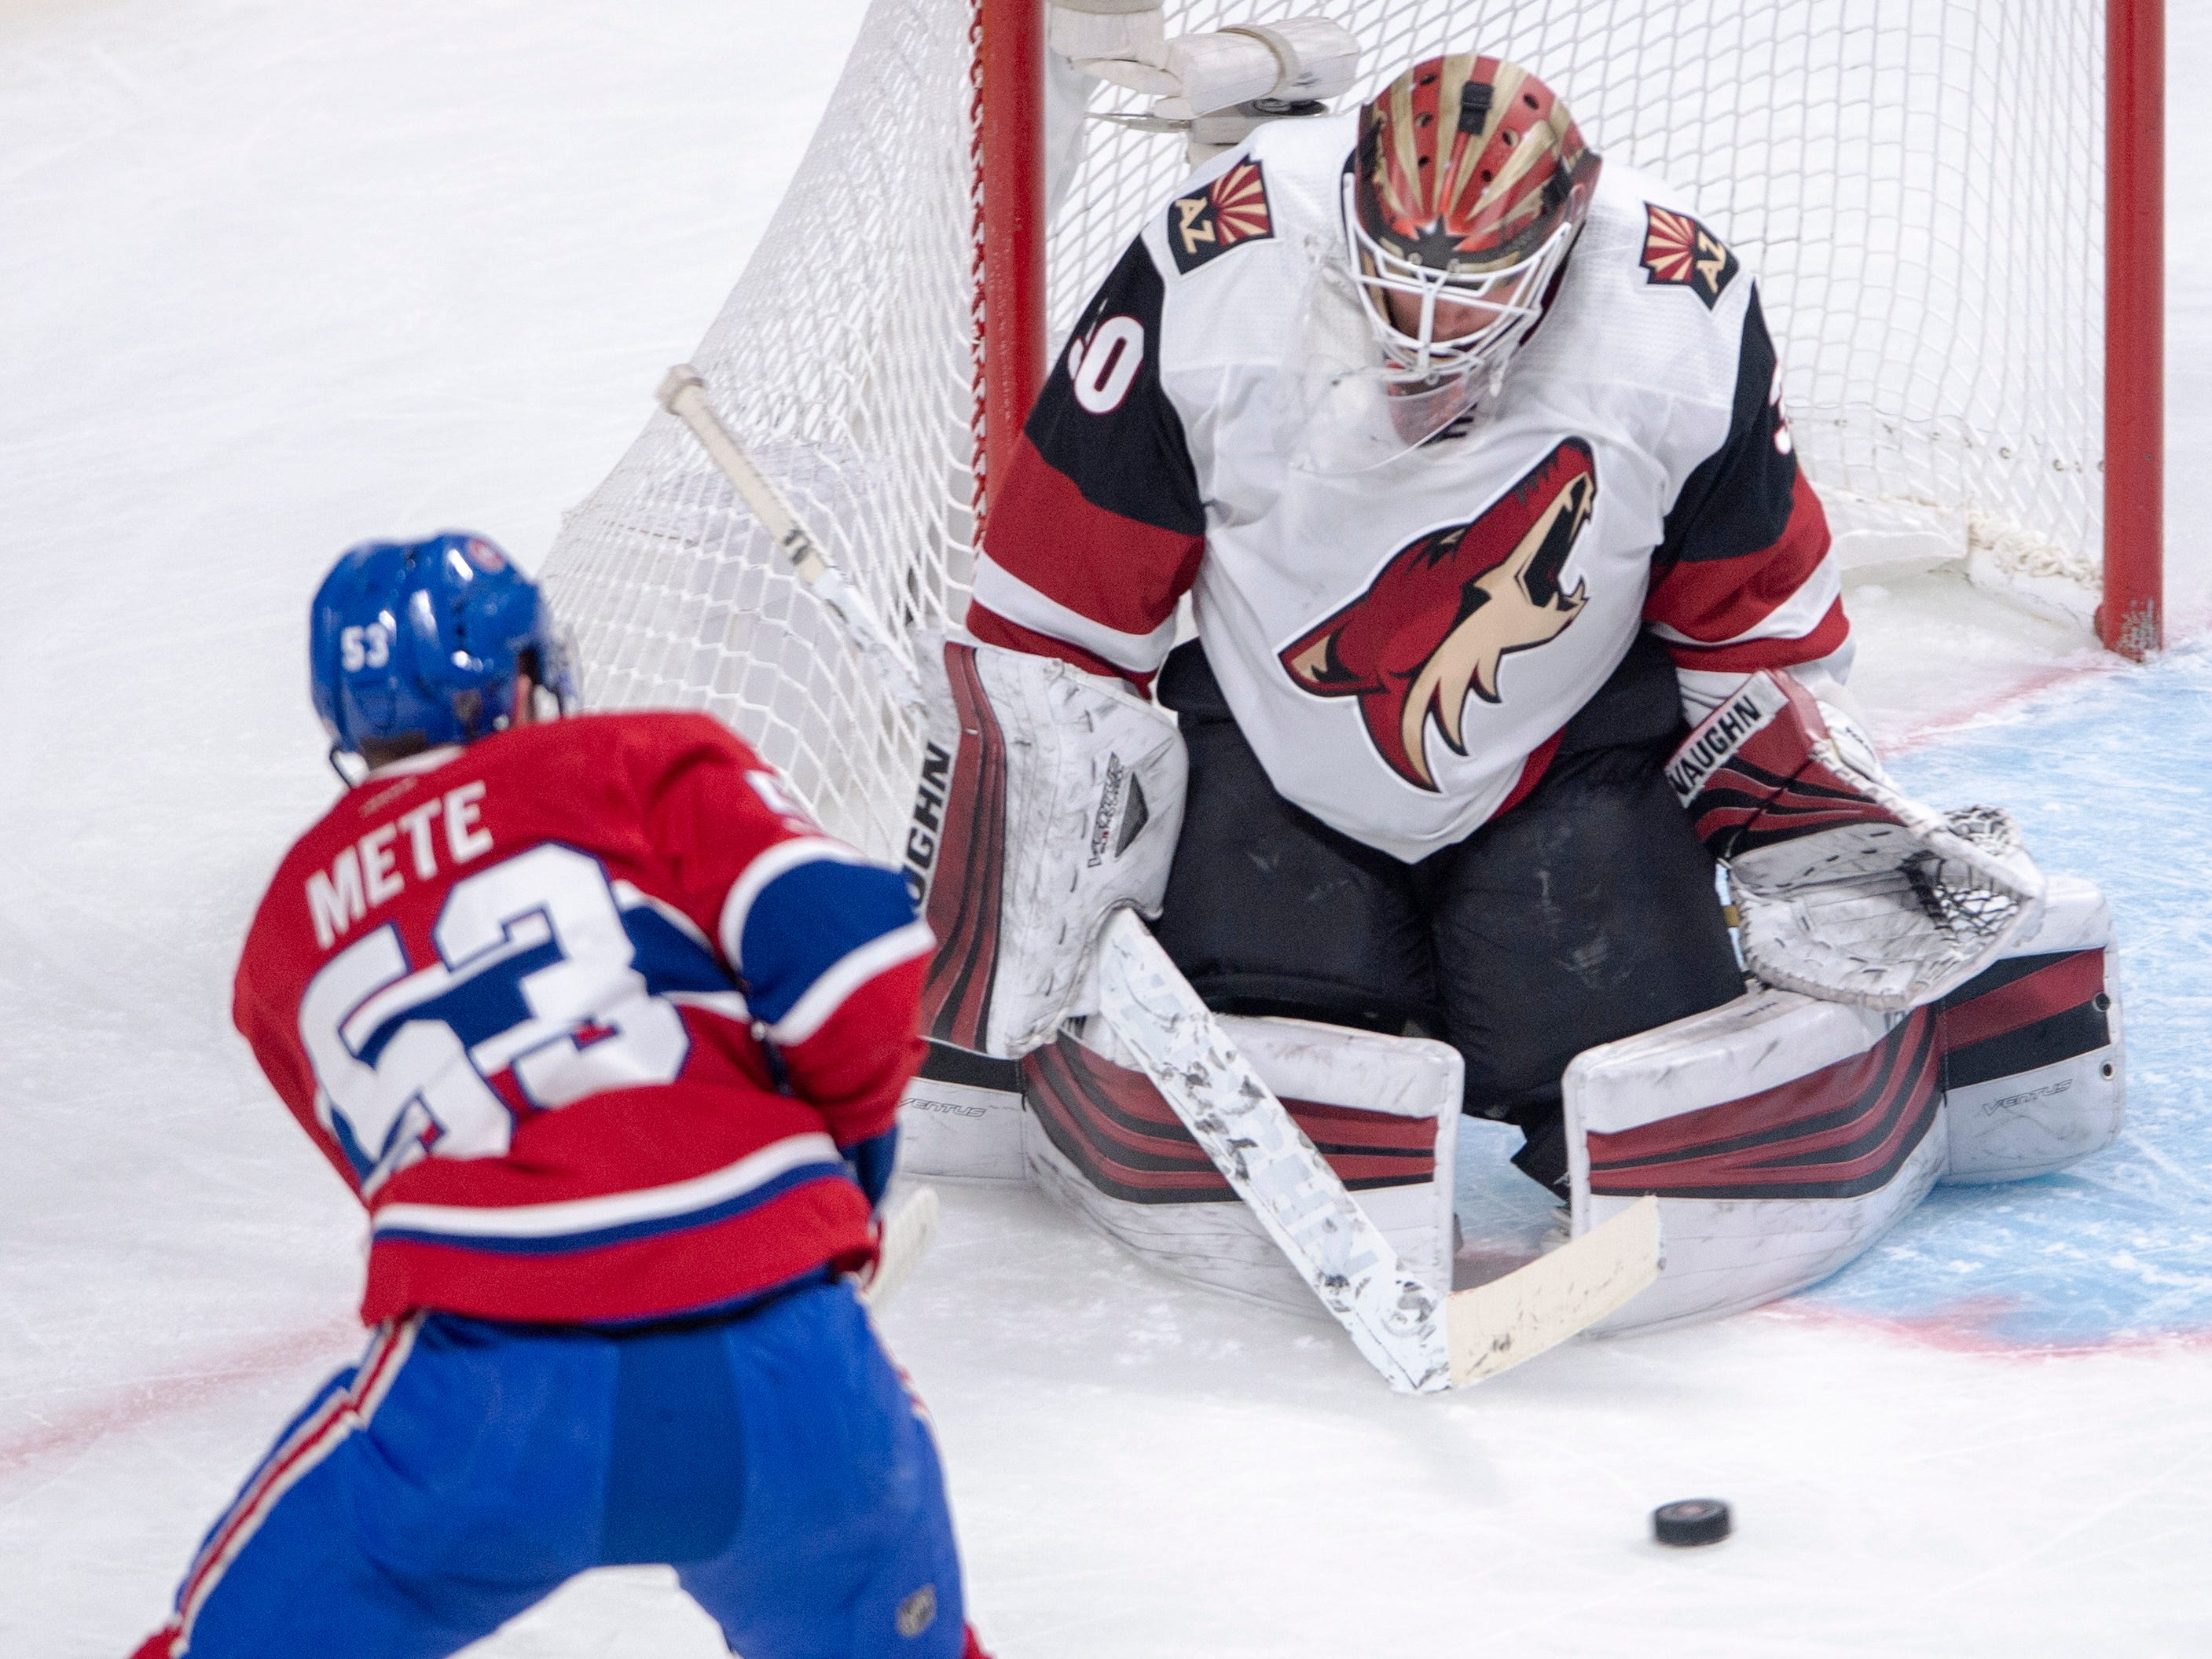 Arizona Coyotes goaltender Calvin Pickard (30) stops Montreal Canadiens defenceman Victor Mete (53) during the first period of an NHL hockey game Wednesday, Jan. 23, 2019, in Montreal.